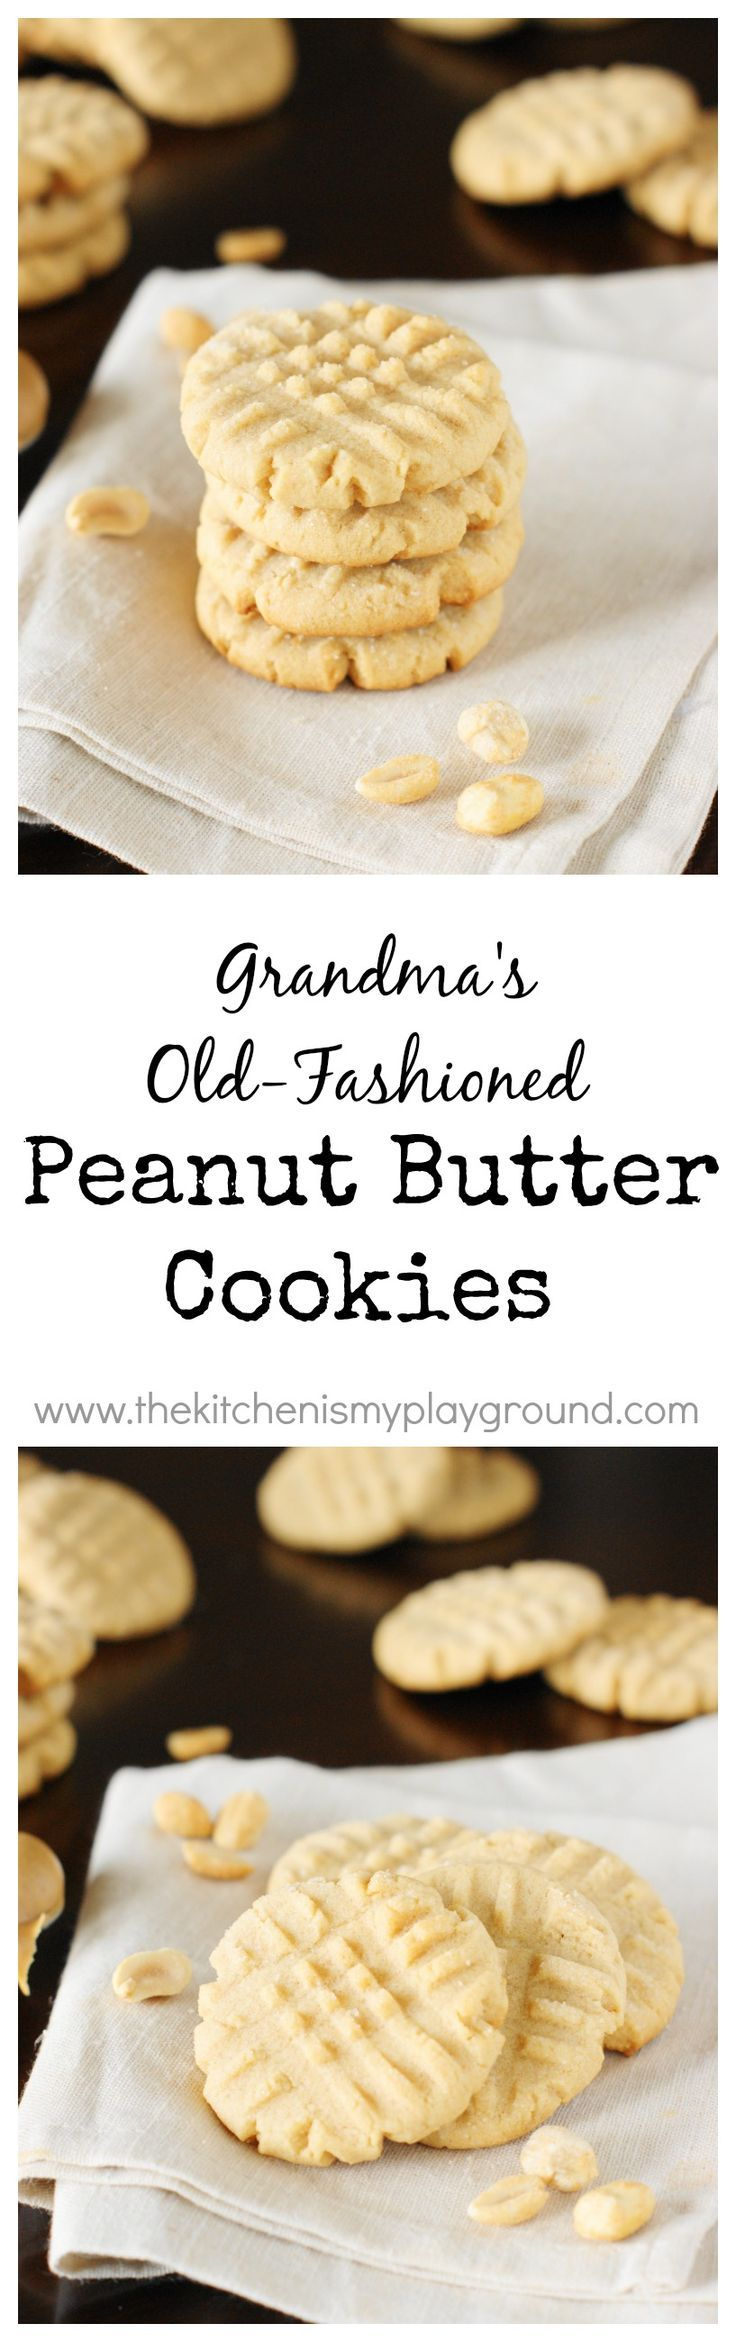 Grandmas Old-Fashioned Peanut Butter Cookies ~ the stuff childhood cookie memories are made of! www.thekitchenism...